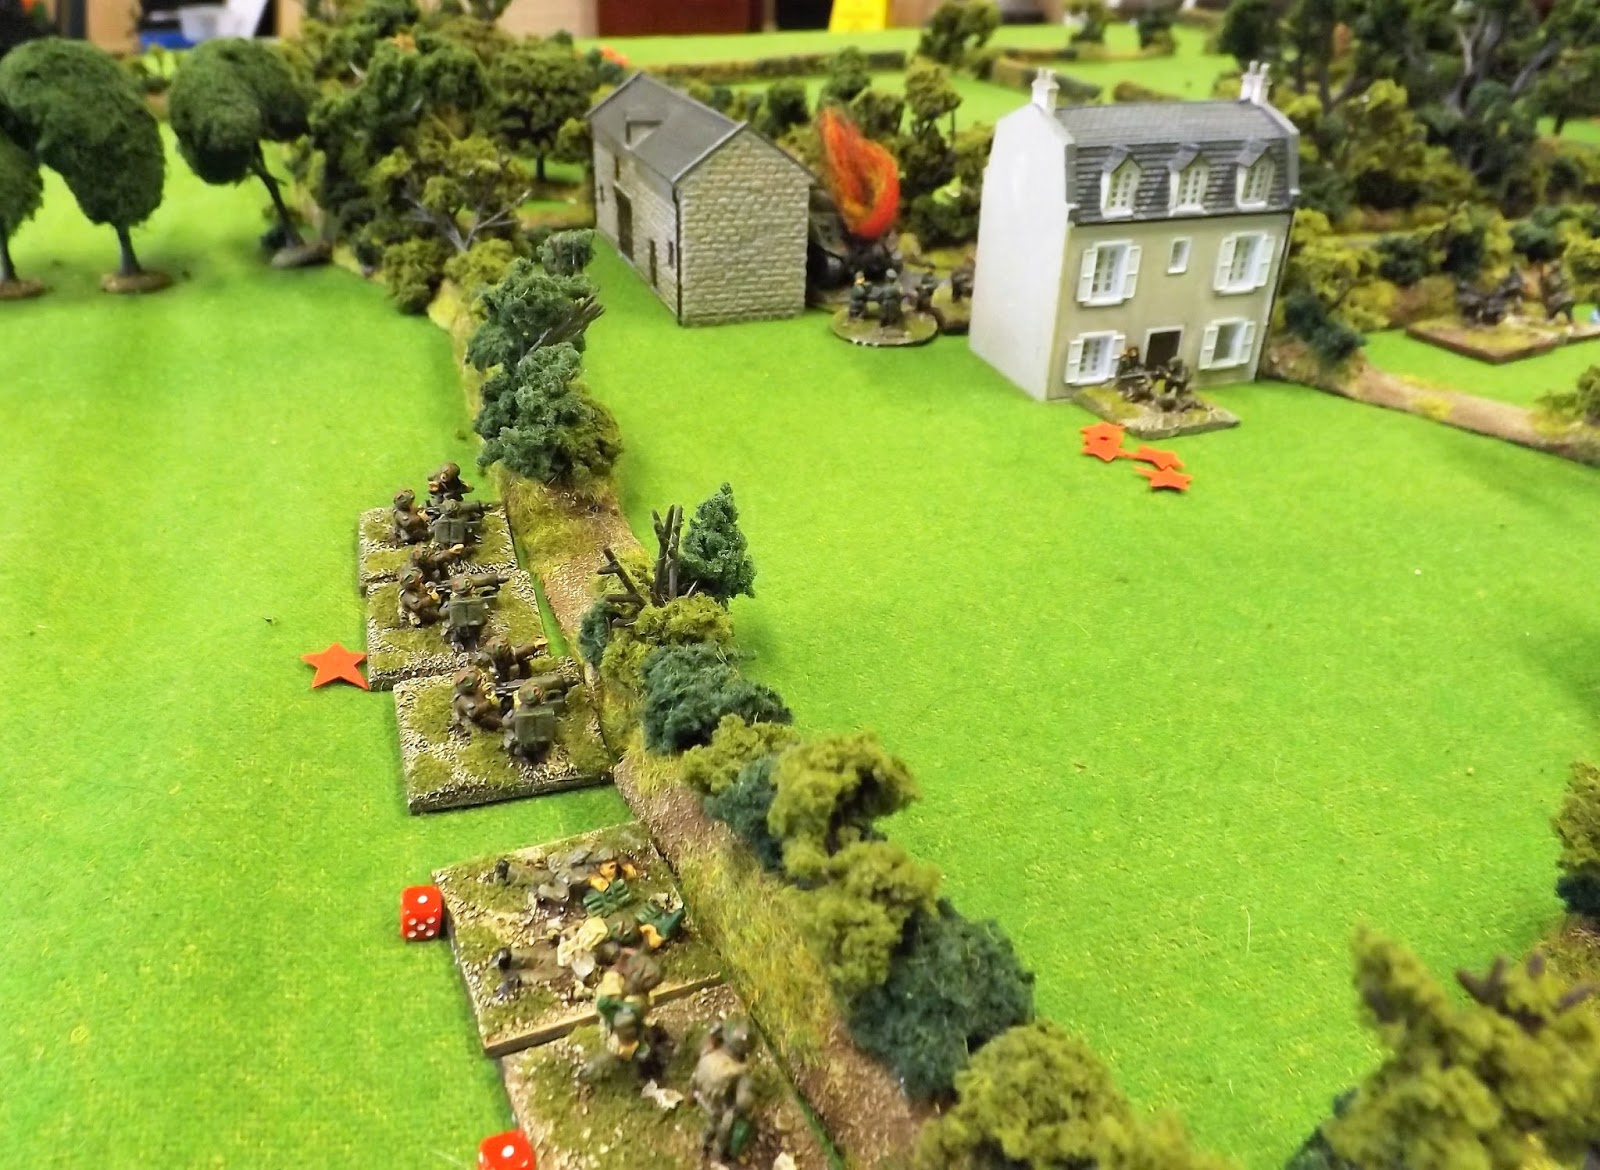 The German return fire when it comes is limited due to the shock and casualties sustained but they manage to inflict a few casualties and knock out a Sherman that burns on the road by the farm